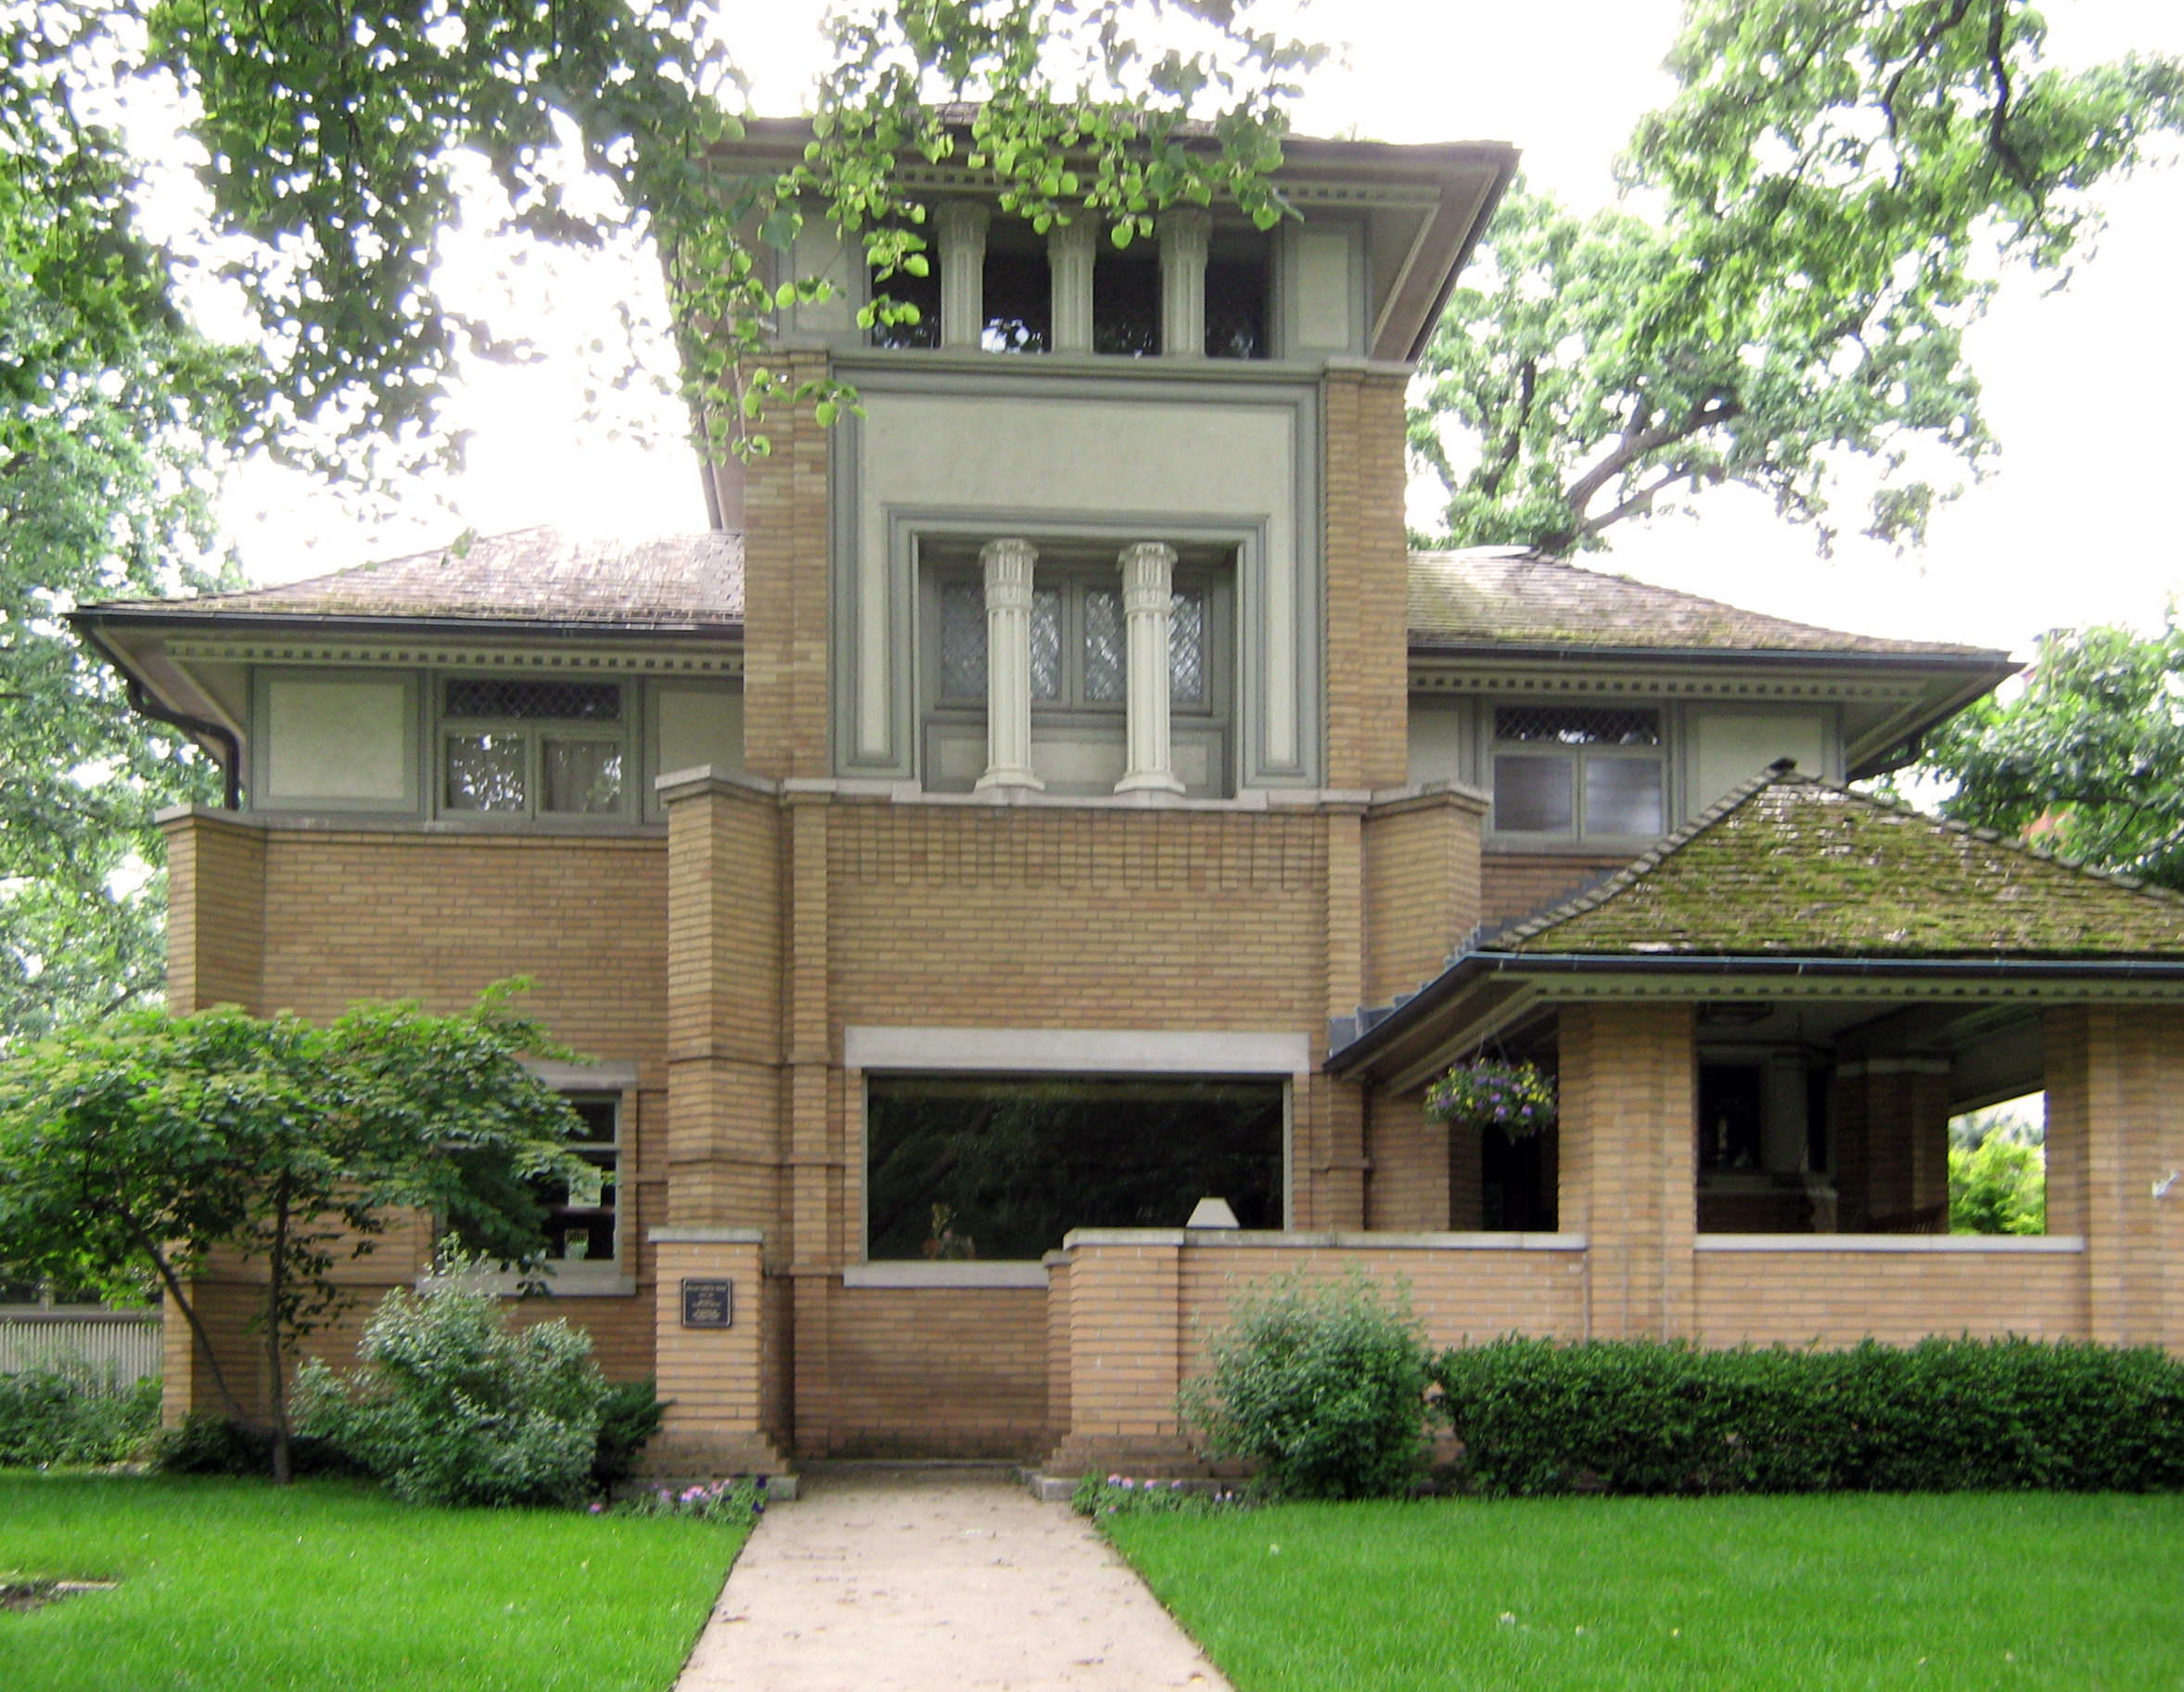 File:Rollin Furbeck House Front.jpg - Wikimedia Commons